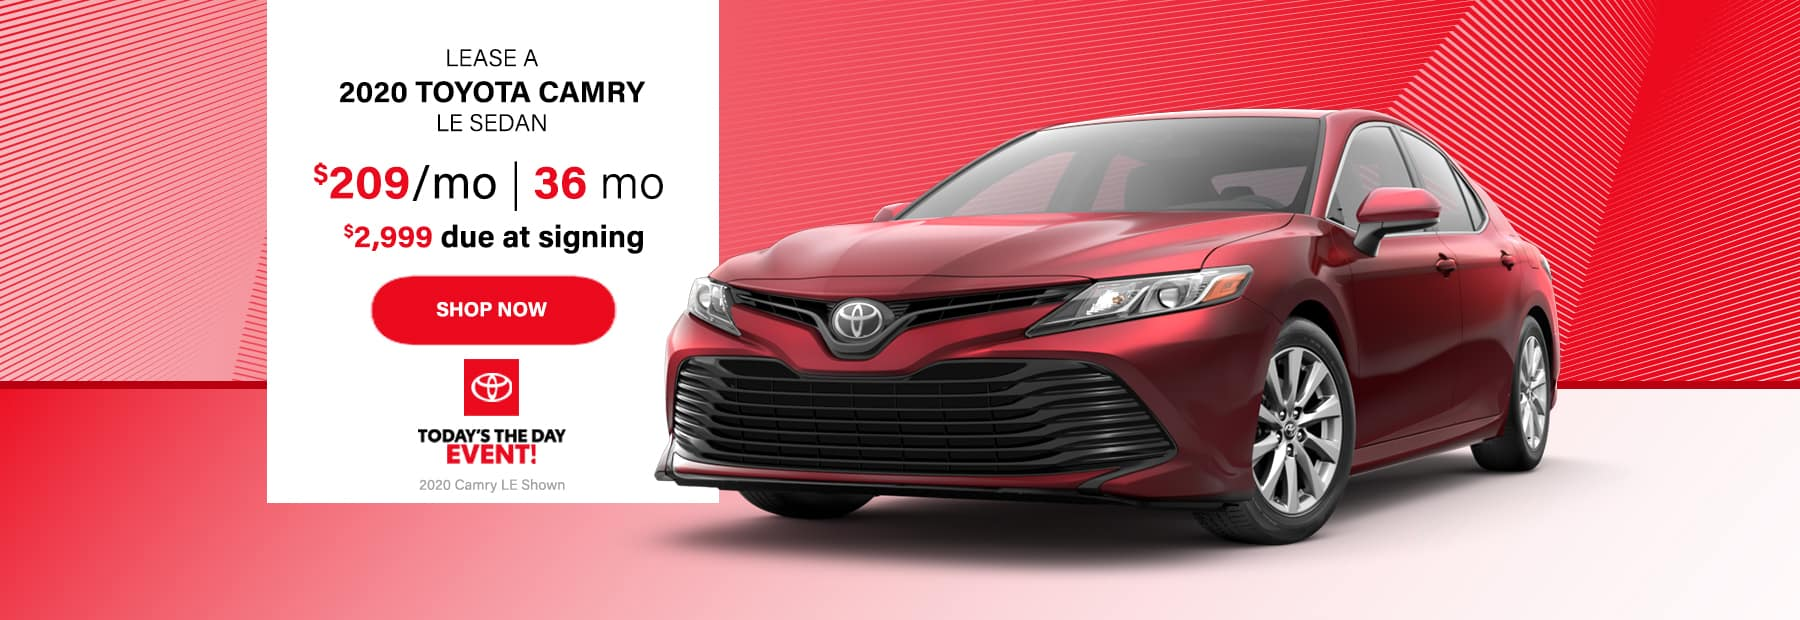 Lease a 2020 Toyota Camry LE Sedan for $209/mo. for 36 mos. with $2,999 down